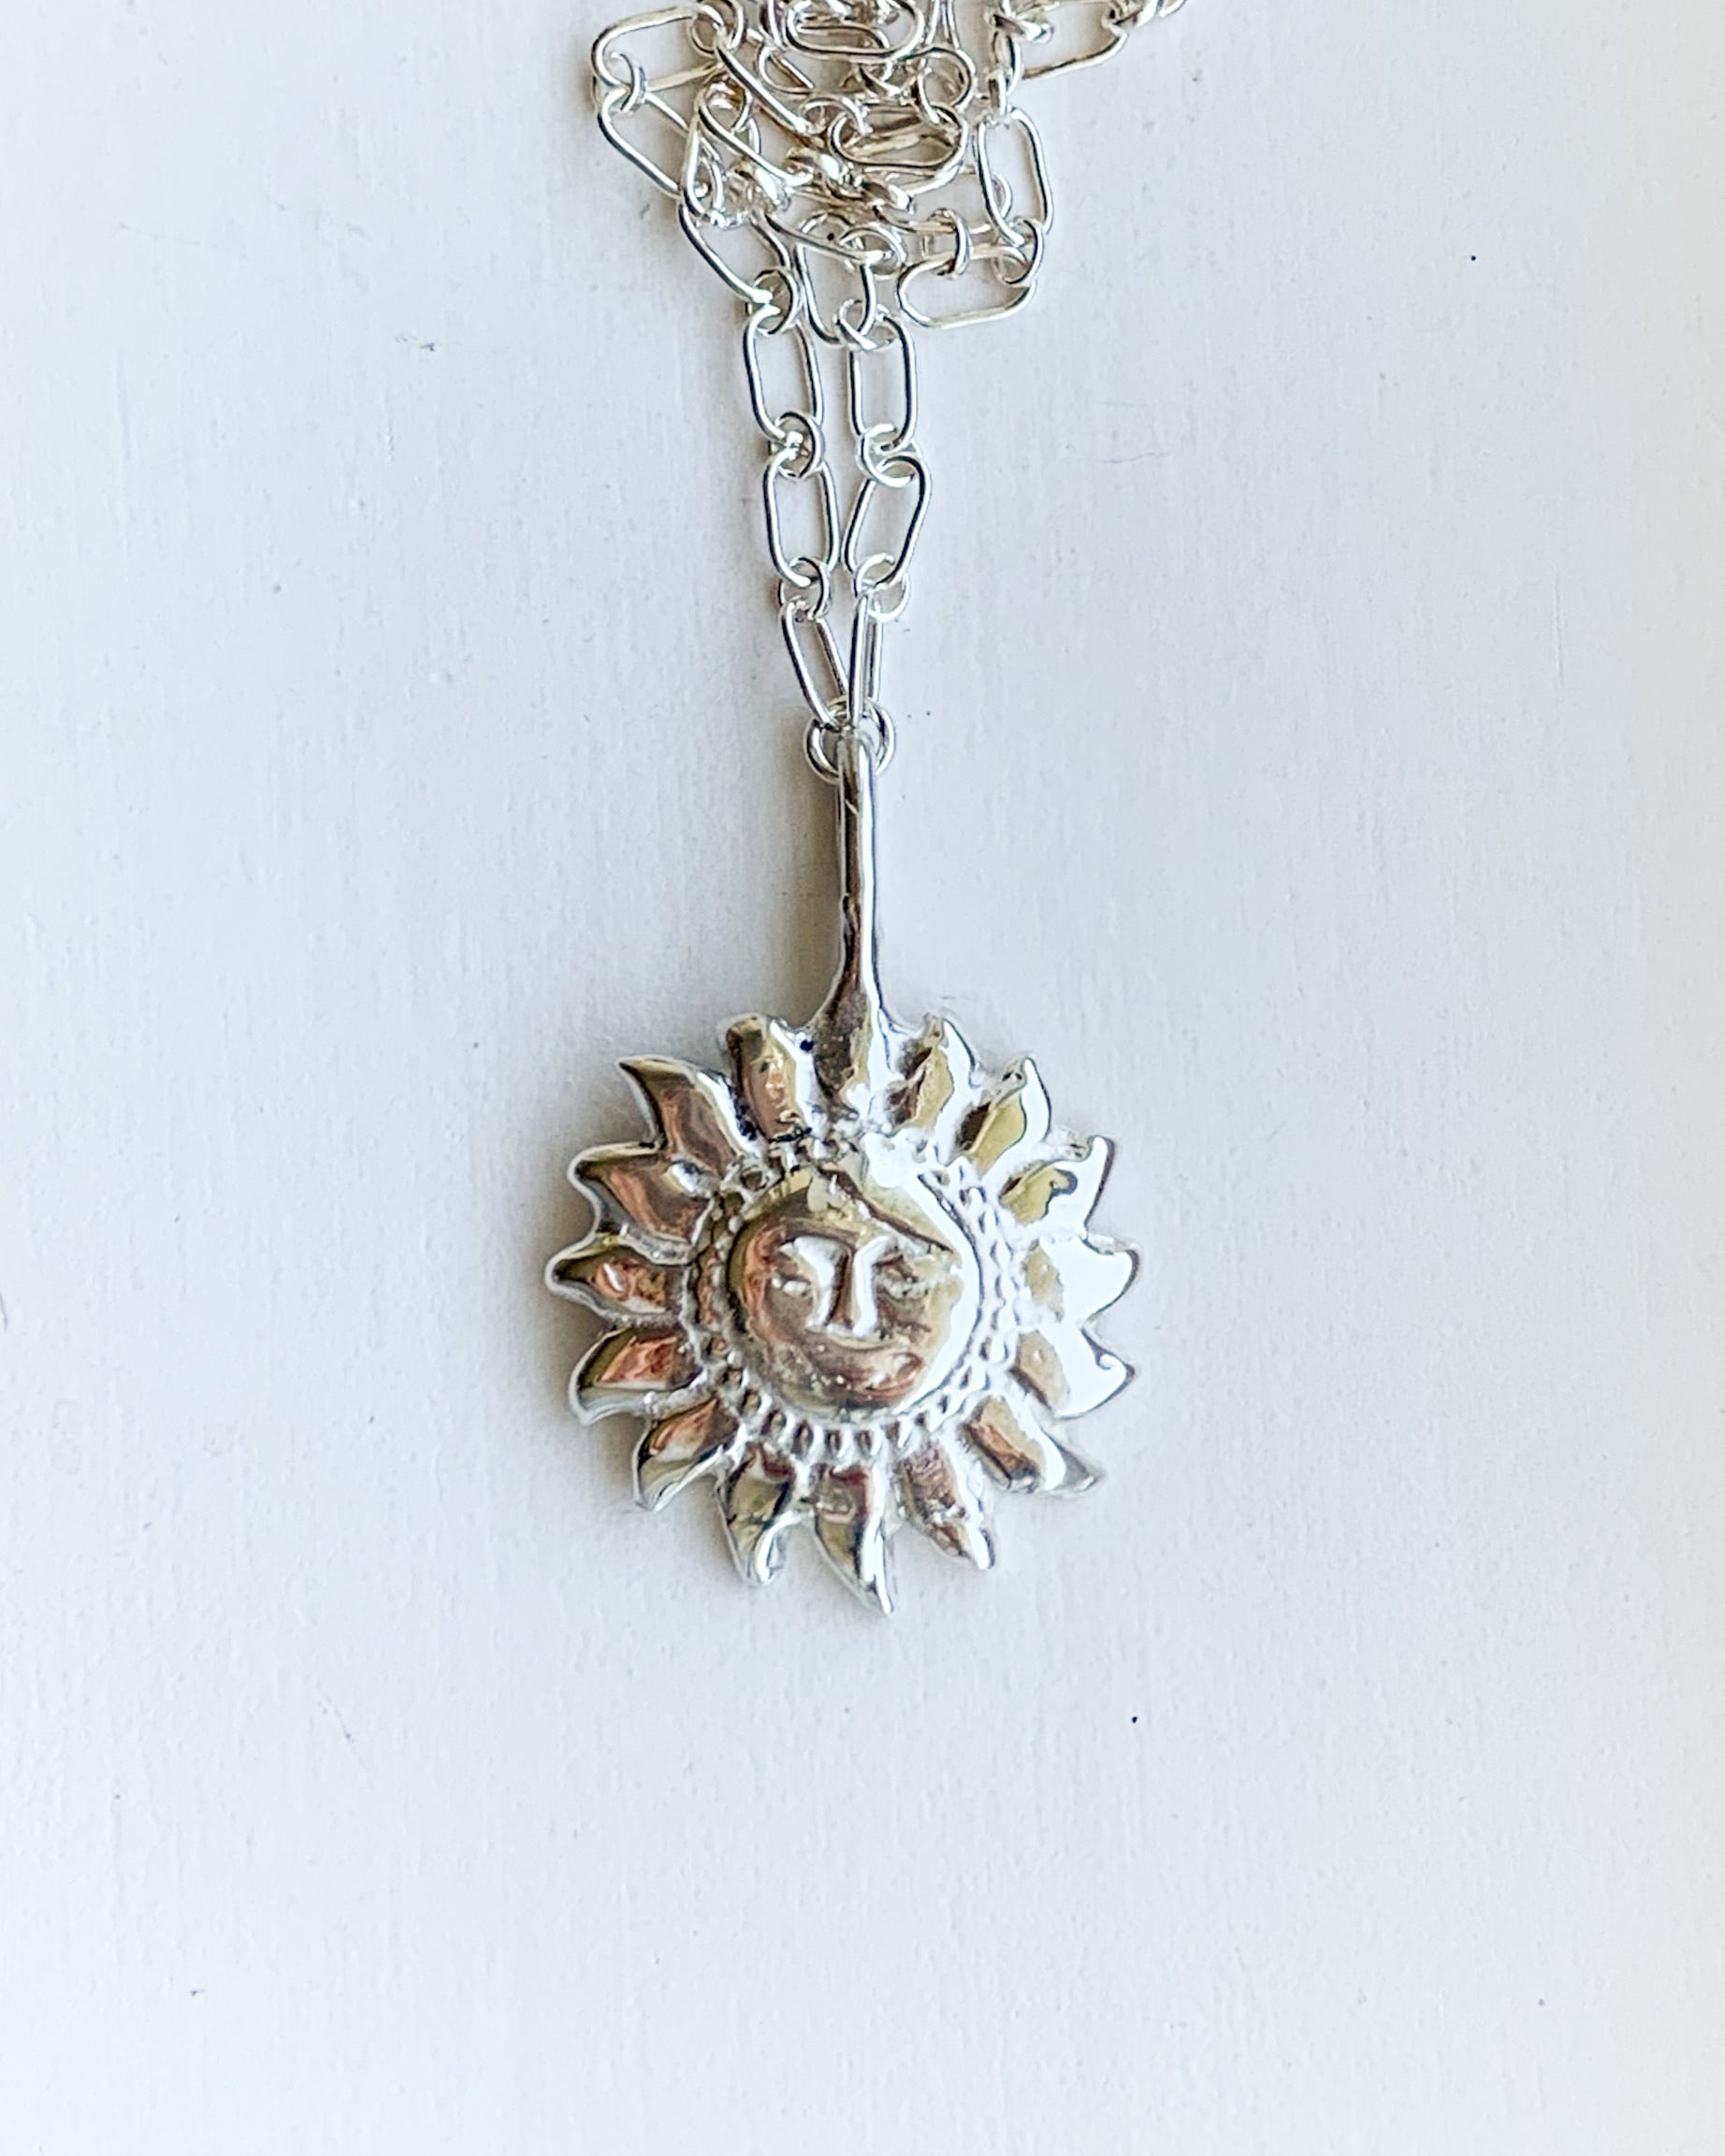 a silver sun shaped pendant necklace on a silver chain, shown on a white background